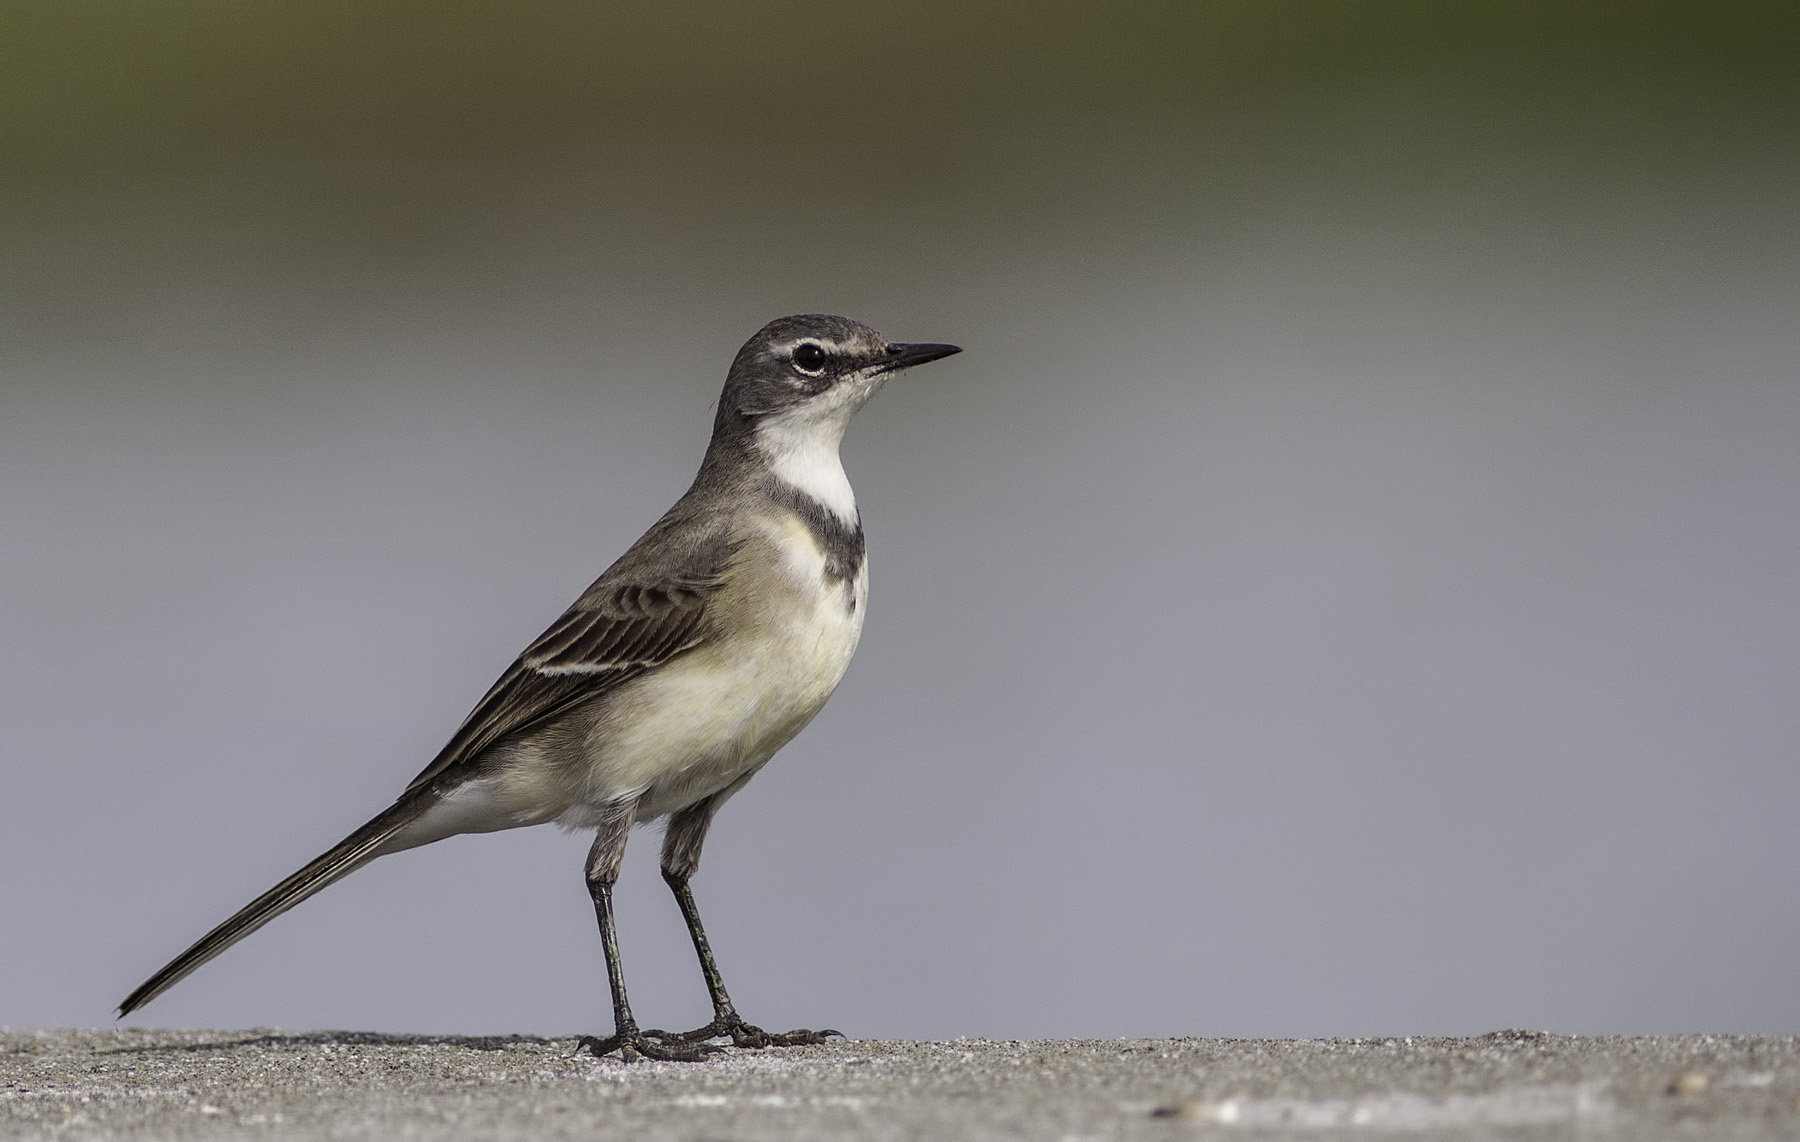 Citrine Wagtail at Strandfontein Sewage Works